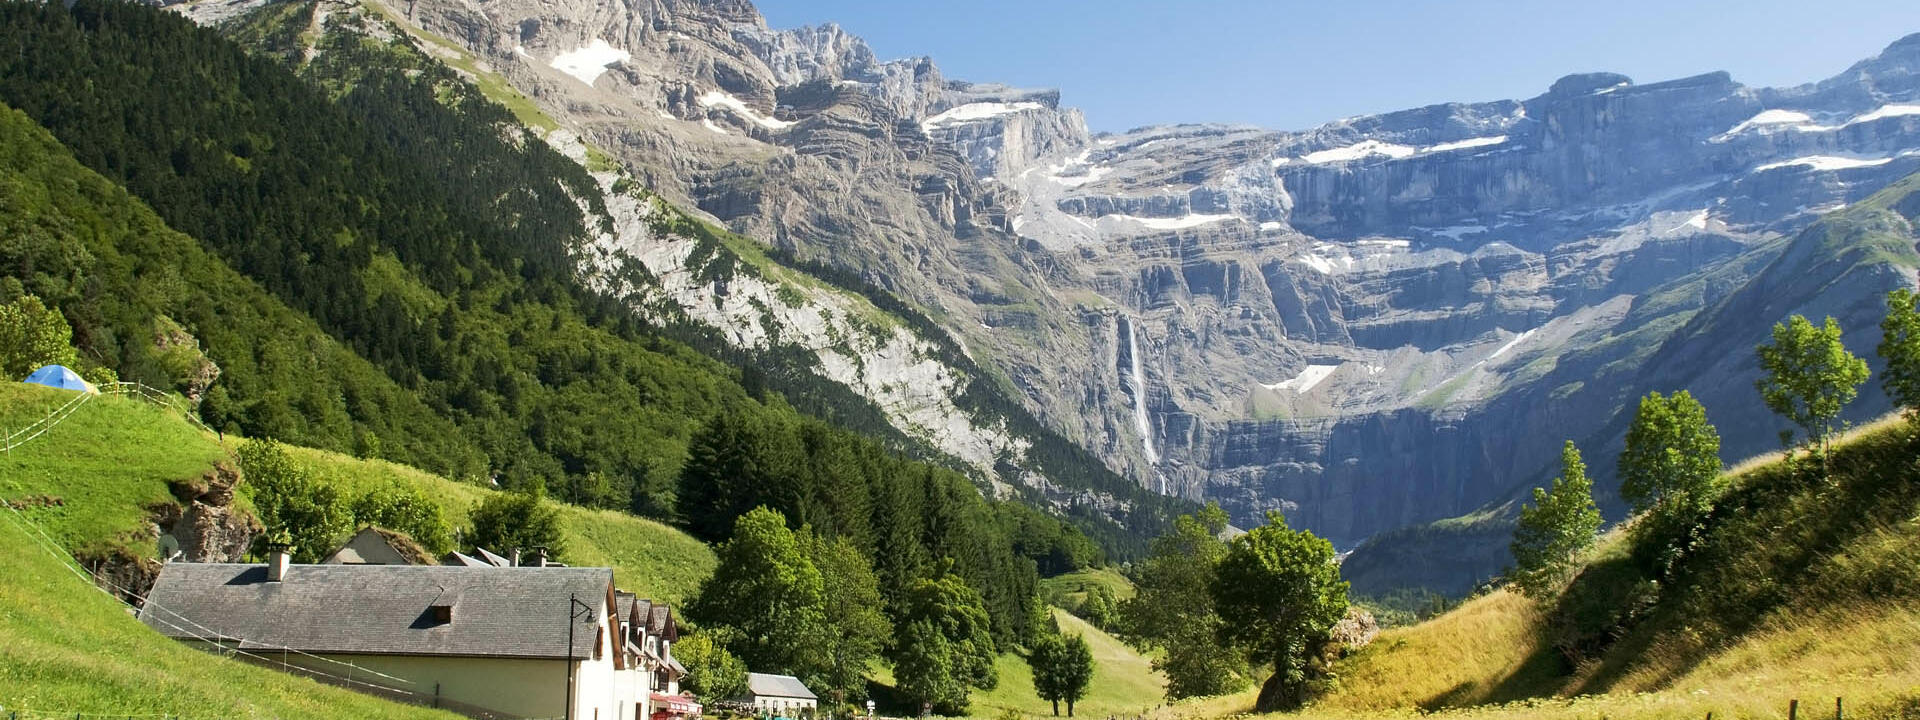 Take an adventure tour in the Pyrenees and discover its hidden gems